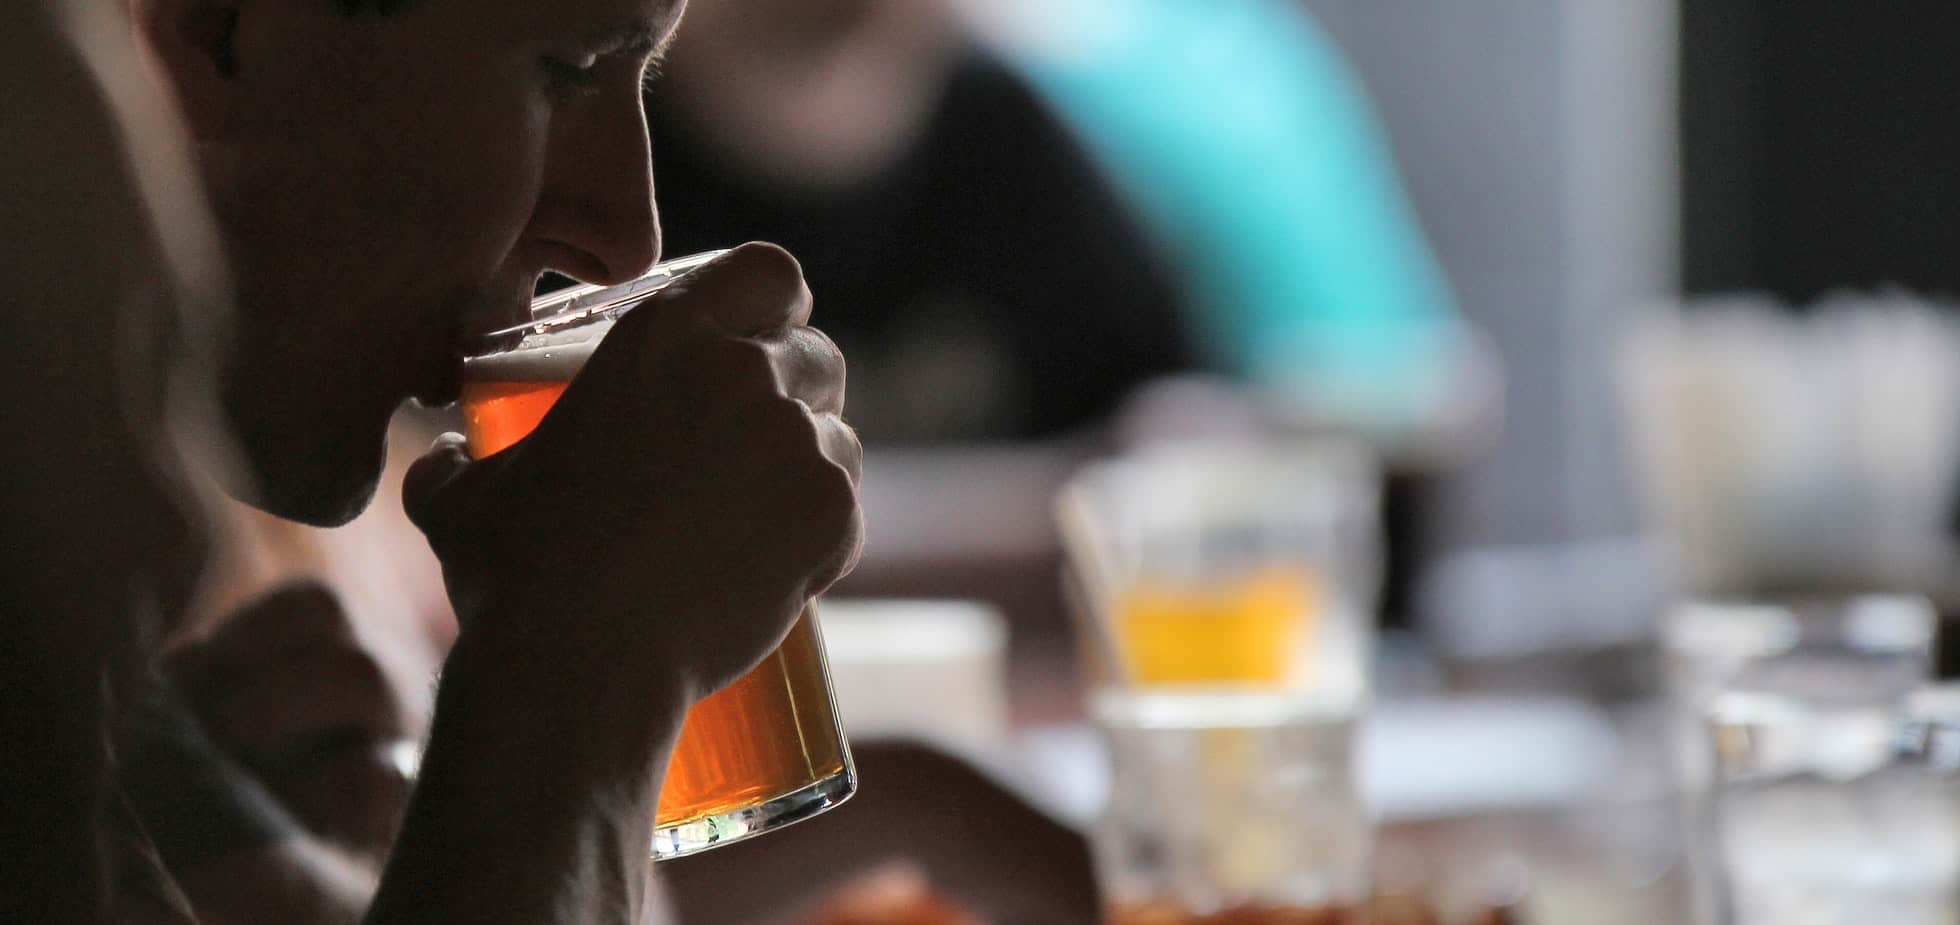 Close up of a boy drinking beer from a pint glass